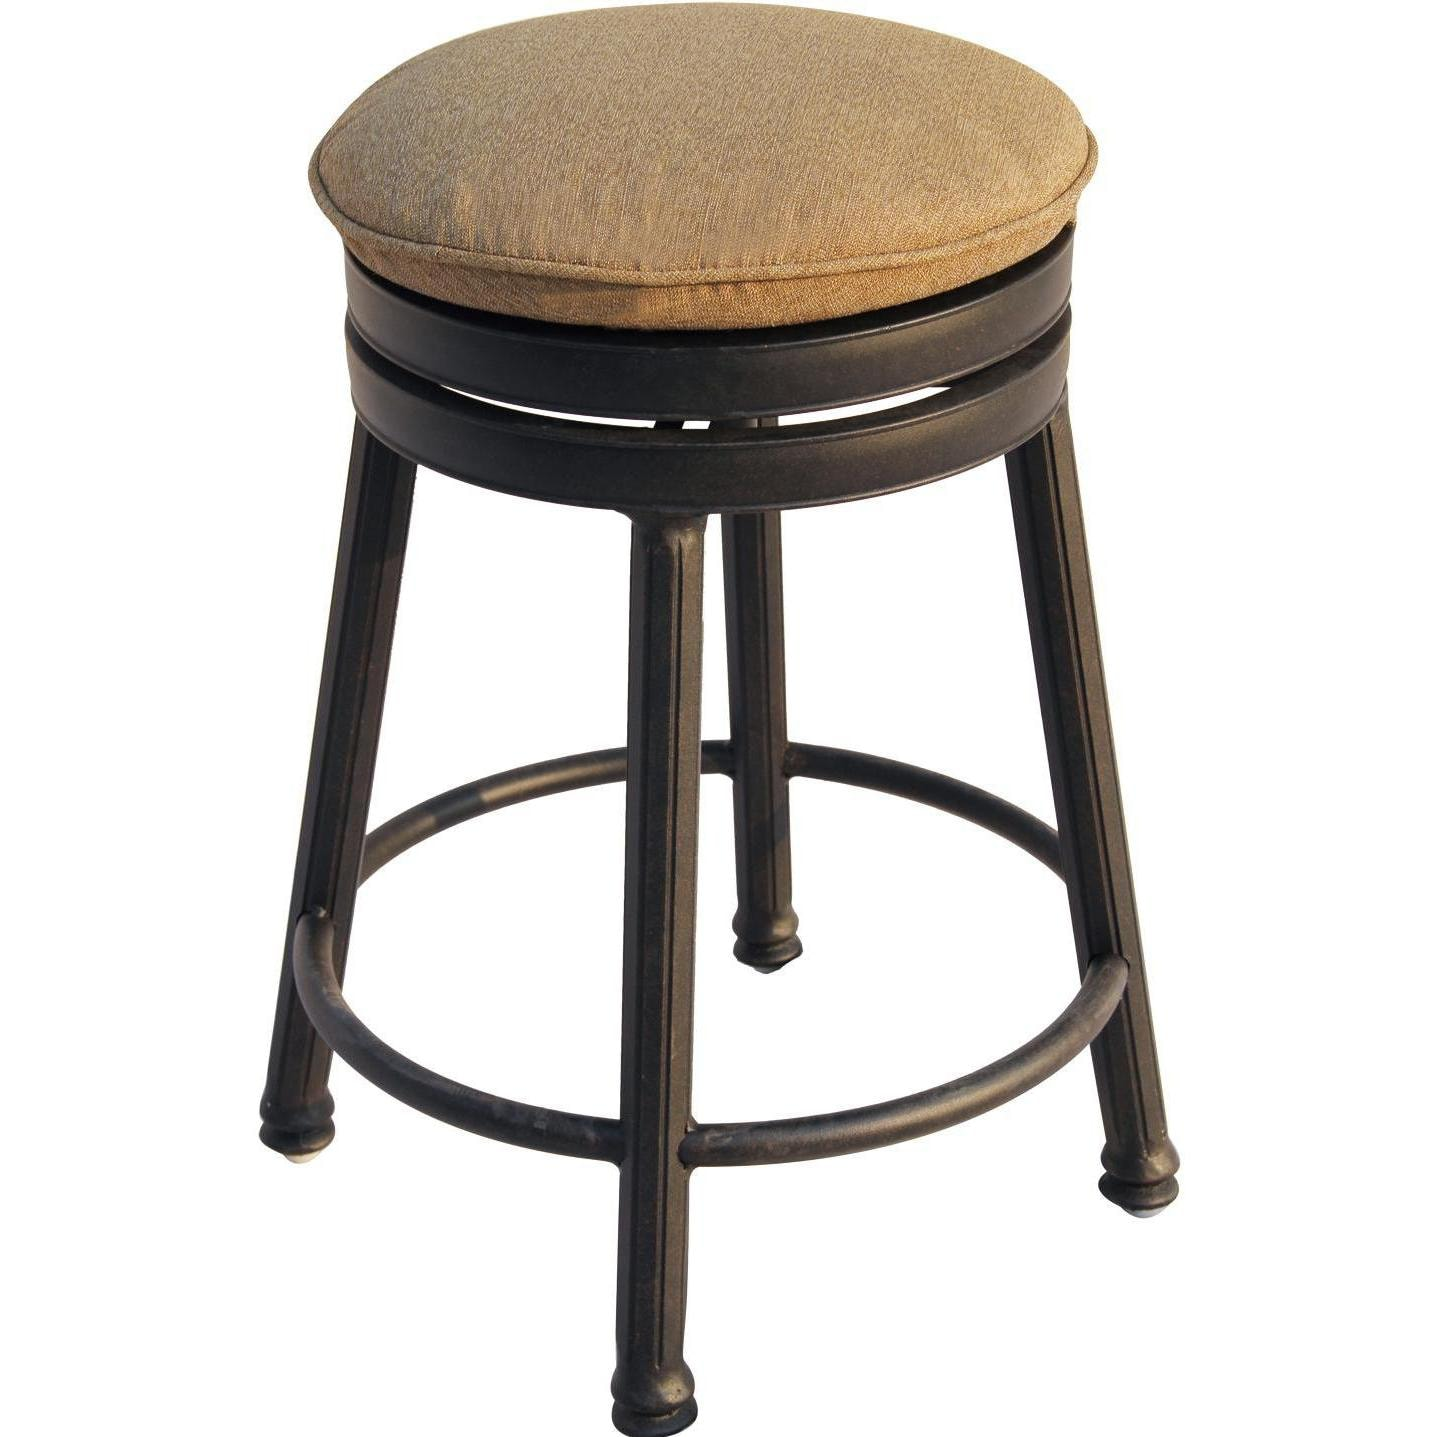 Darlee Cast Aluminum Outdoor Patio Round Bar Stool With Cushion - Antique Bronze  sc 1 st  Ultimate Patio & Darlee Classic Cast Aluminum Round Backless Patio Swivel Counter ... islam-shia.org